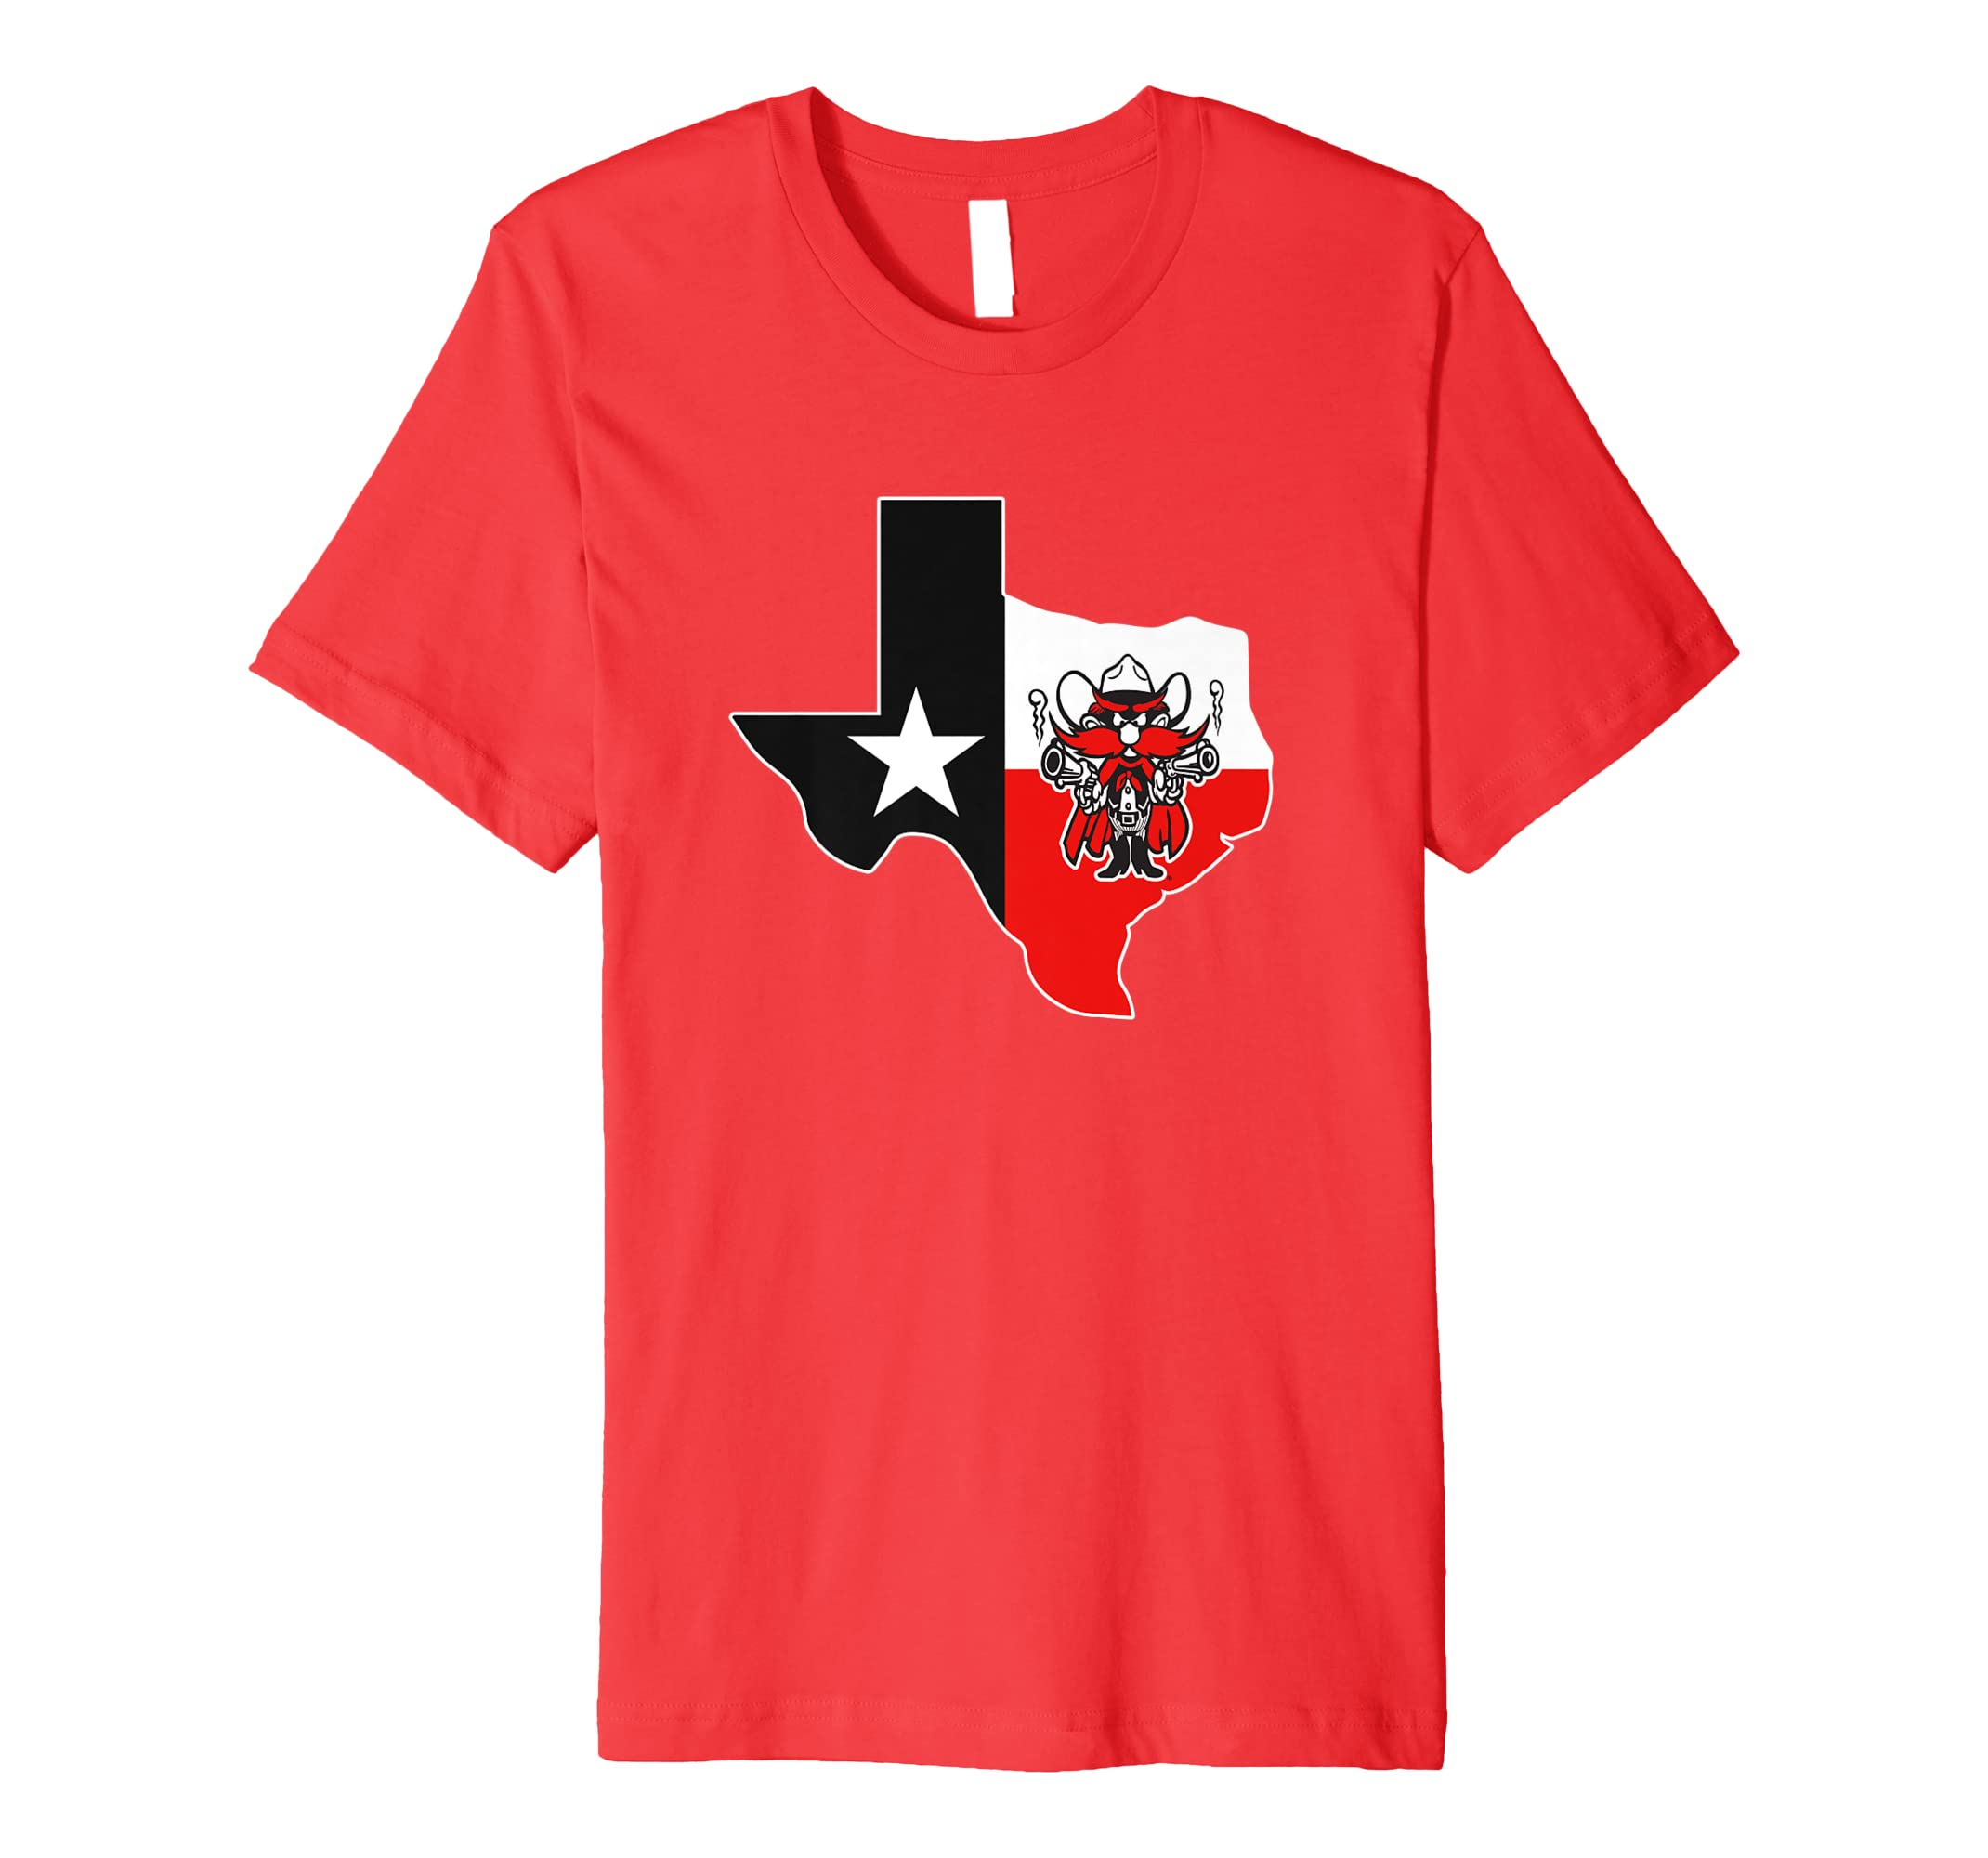 Texas Tech Red Raiders Mascot In State Outline Flag T-Shirt Hoodie ... ae5c9682d